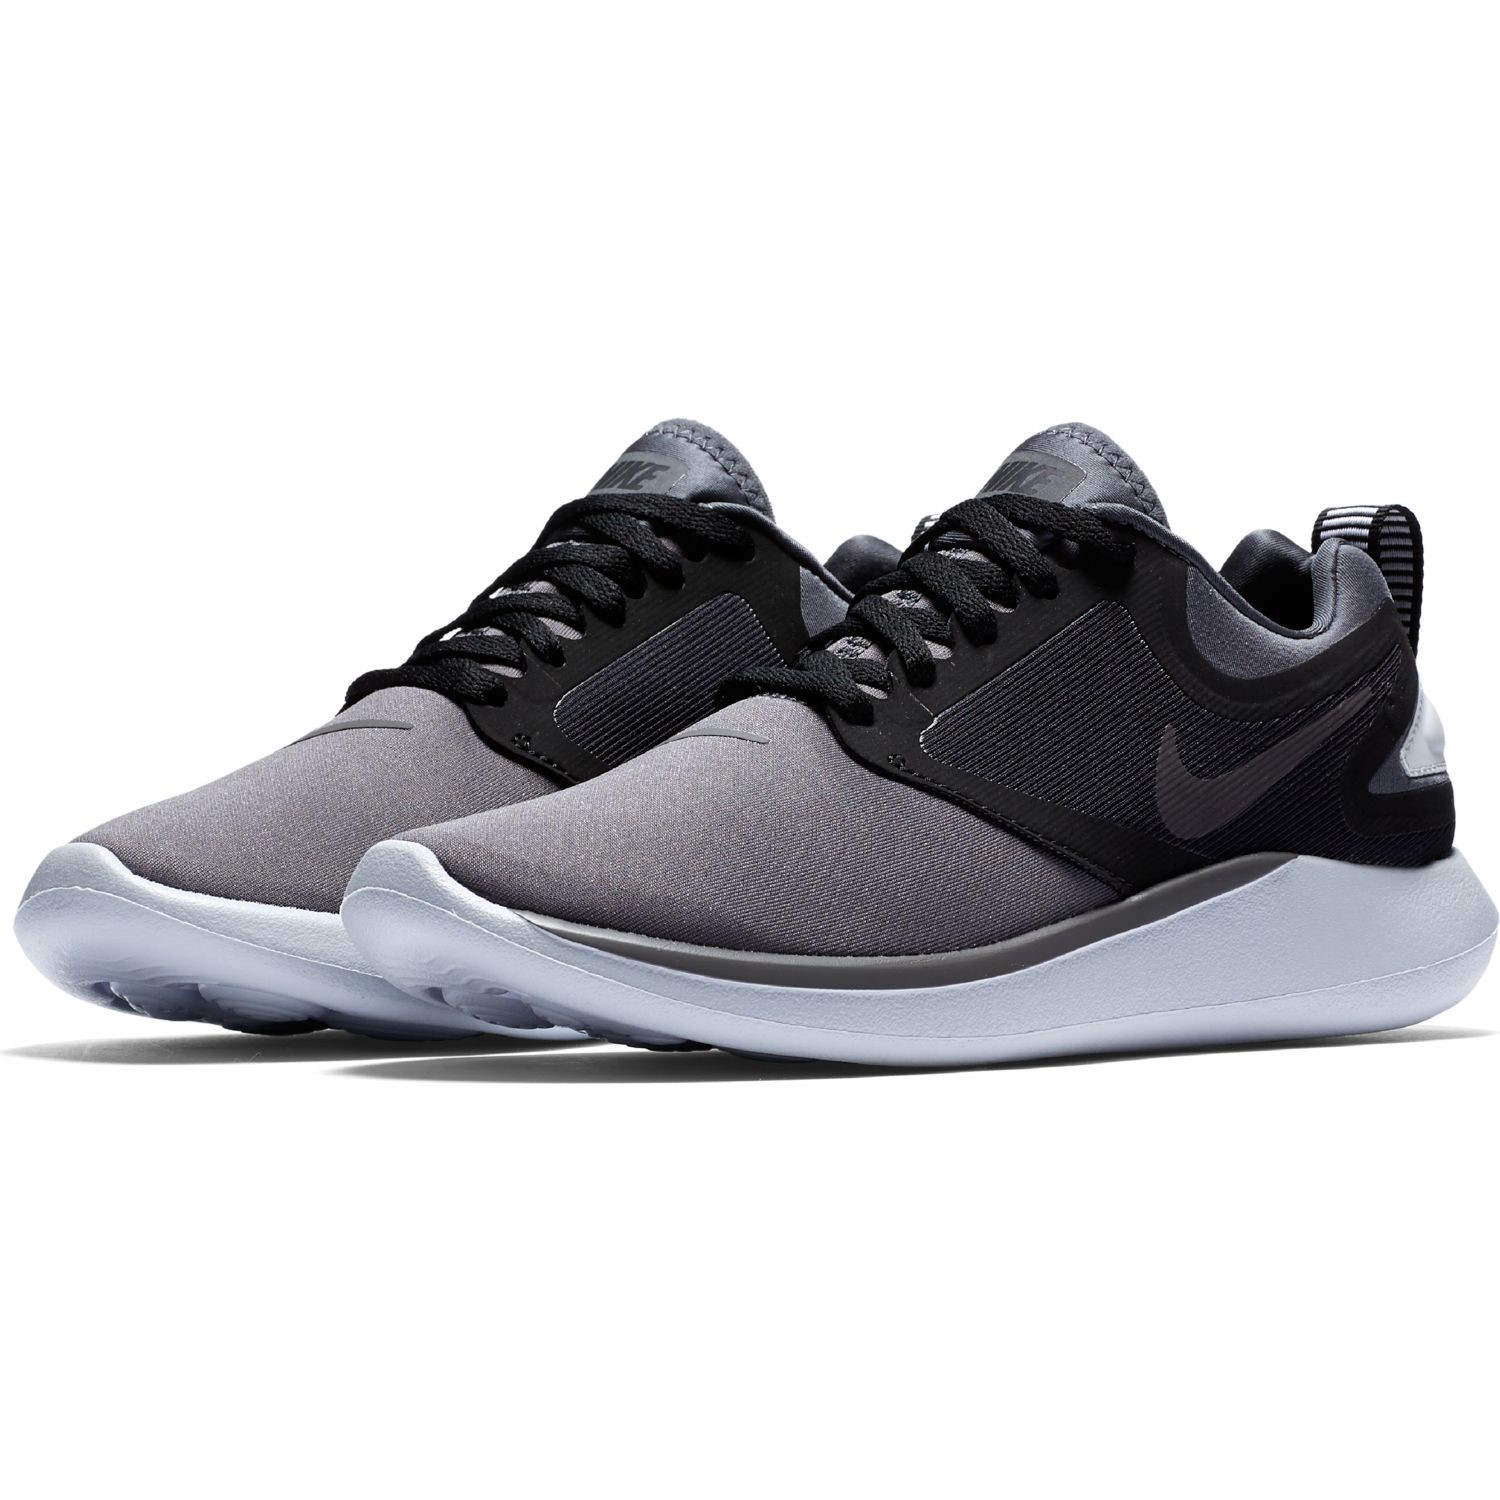 6a710245b84 Nike Lunarsolo GS - Kids Boys Running Shoes - Dark Grey Black ...